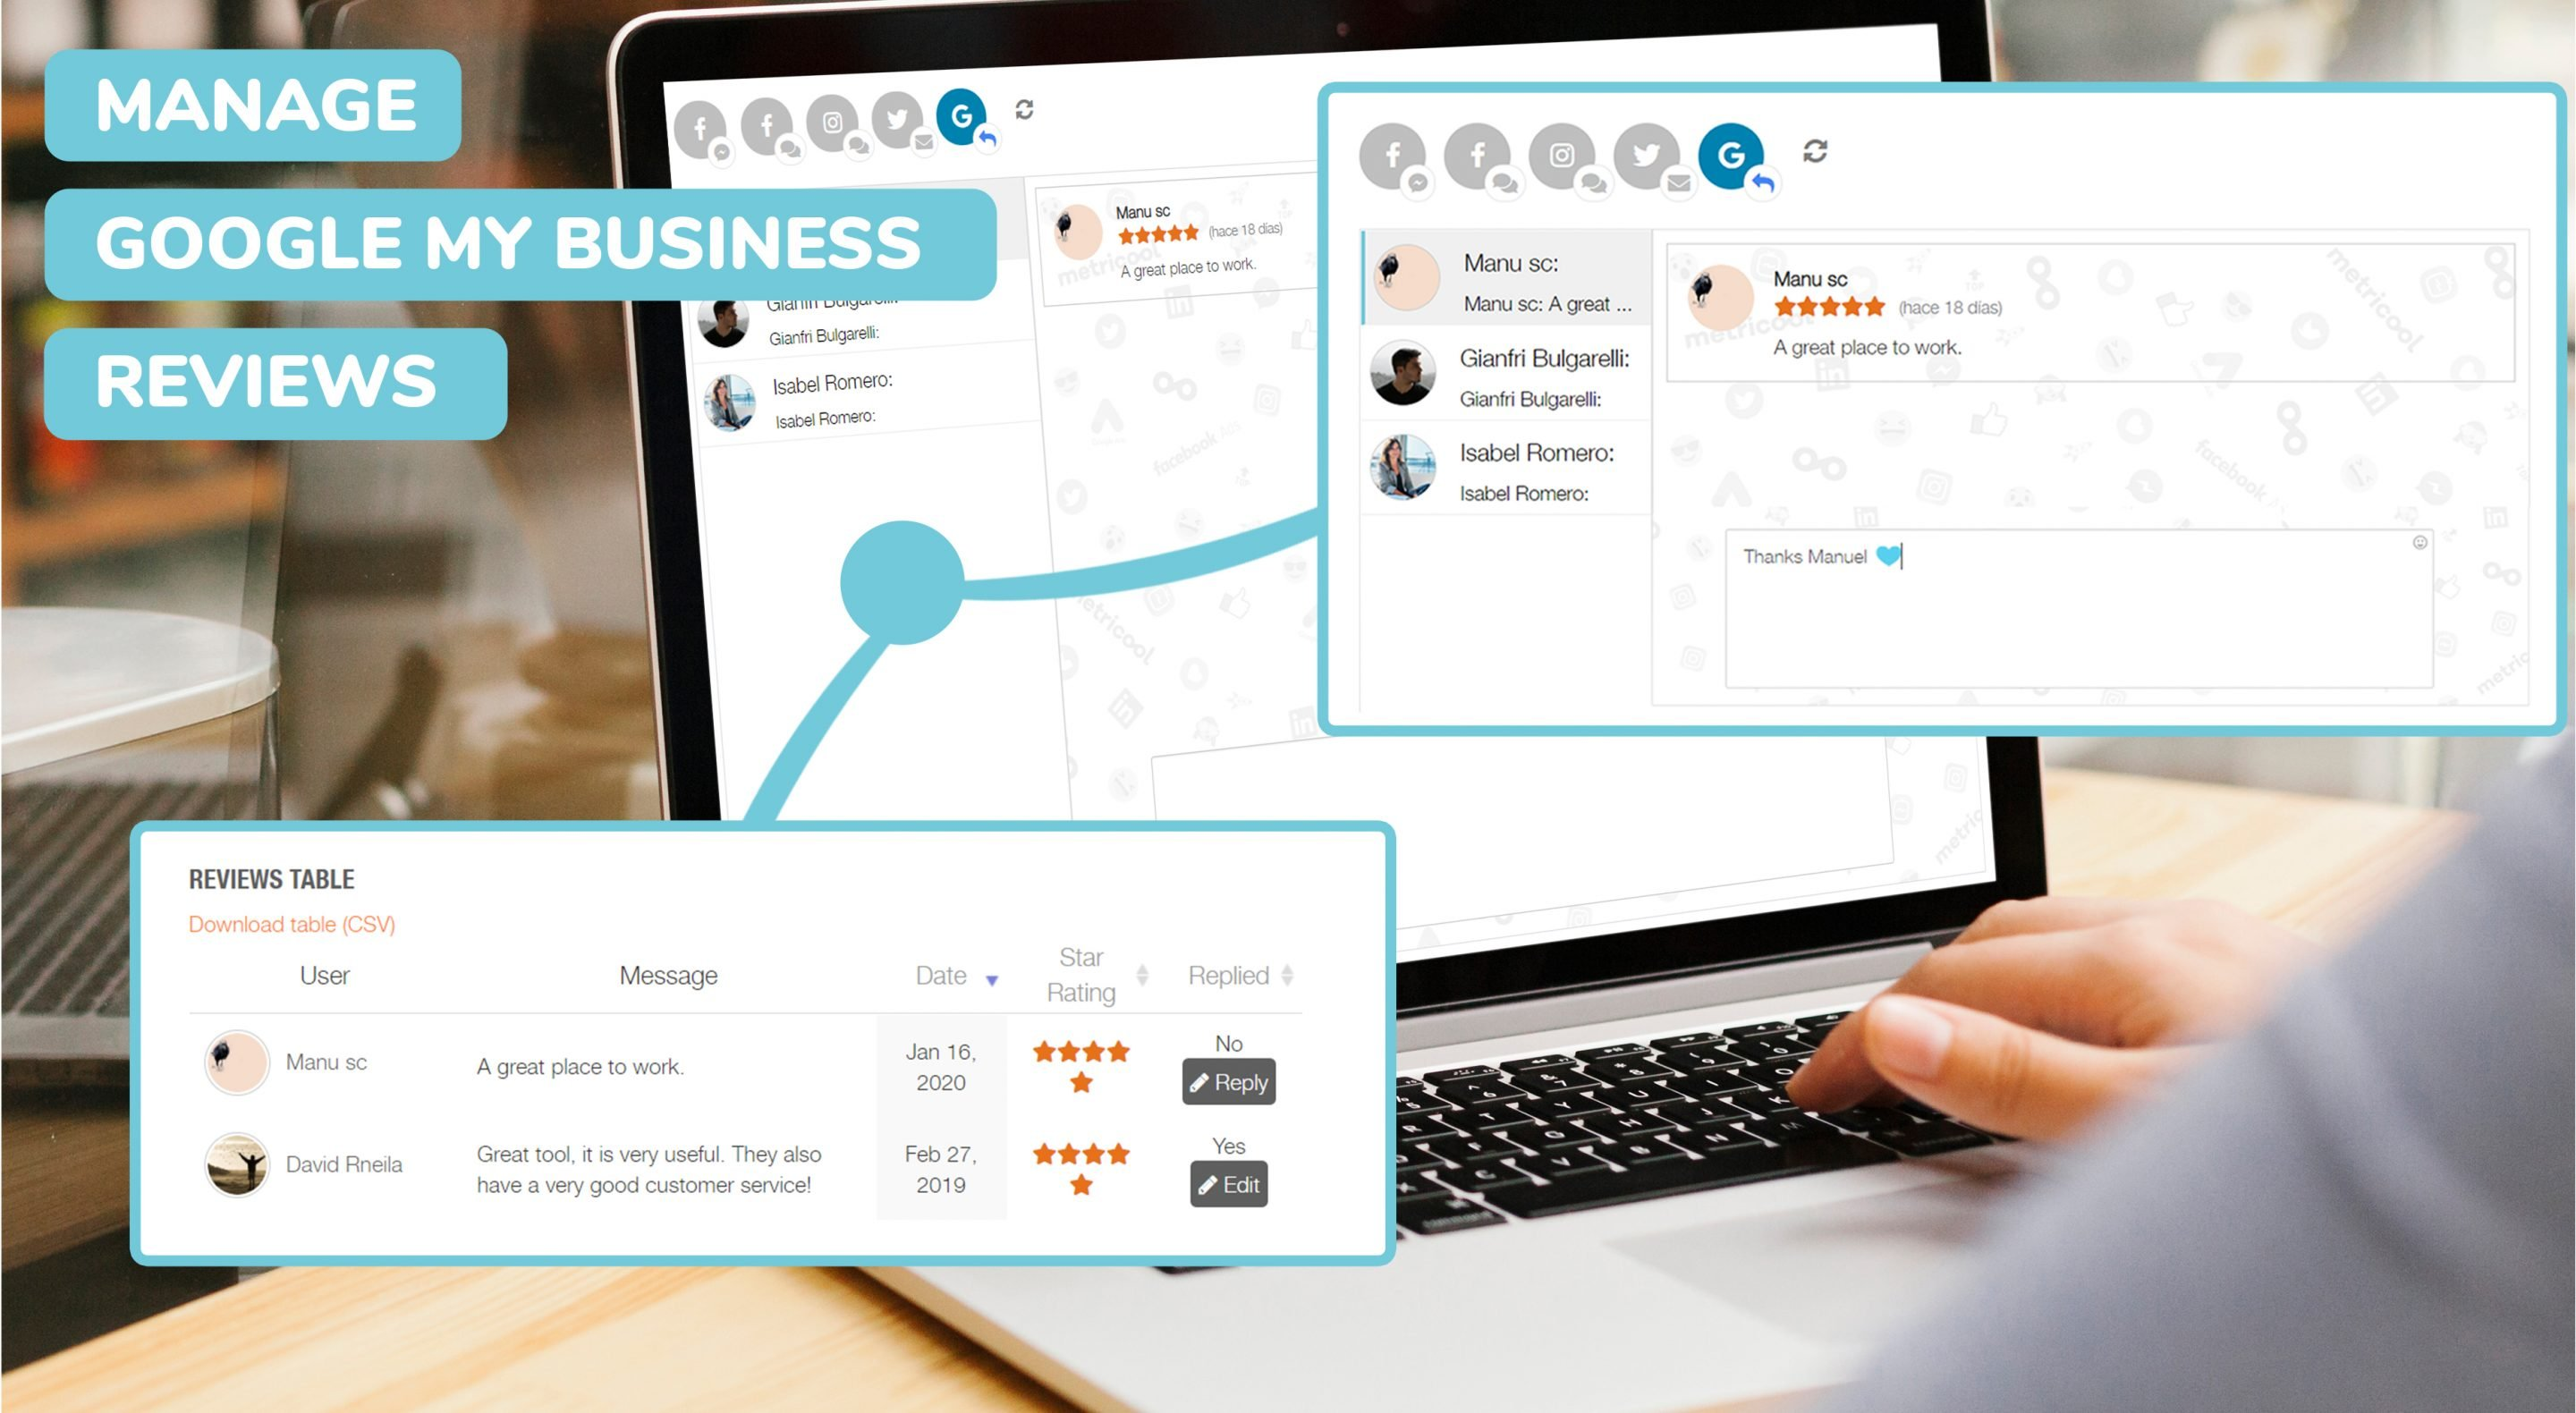 Manage your Google My Business Reviews from Metricool